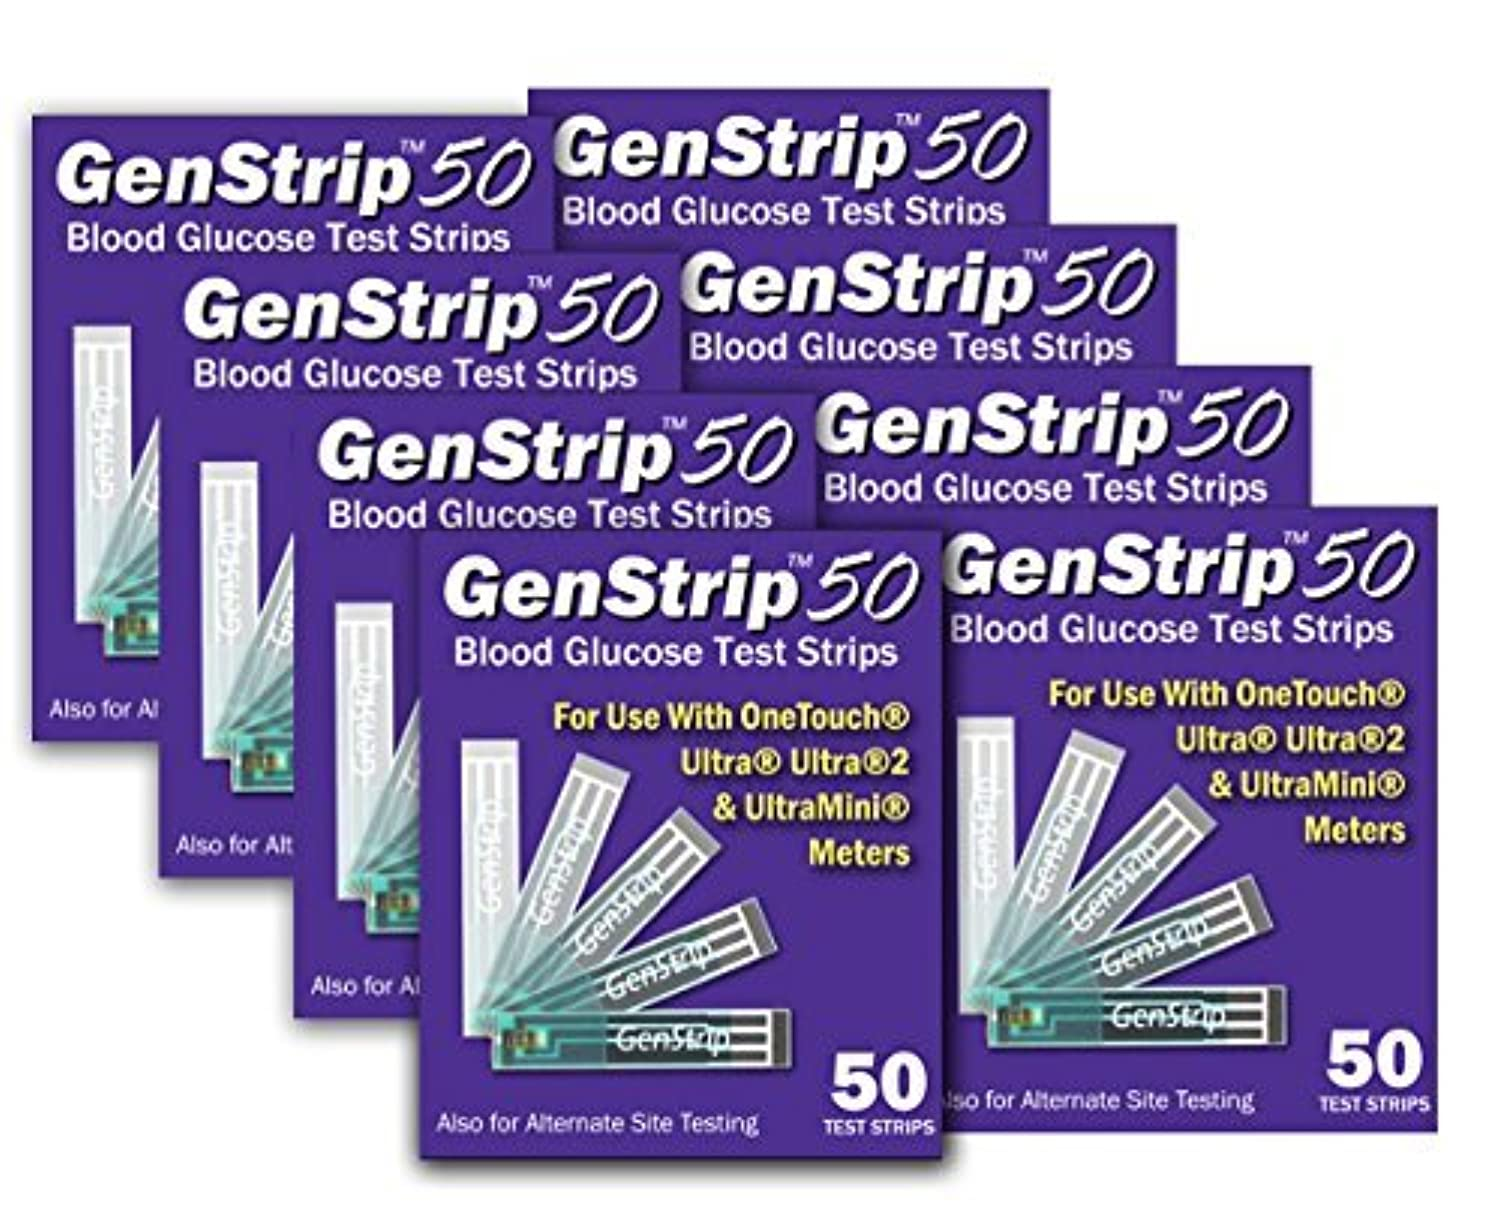 GenStrip50 Test Strips For Use with OneTouch Ultra Meters | 8 pack by